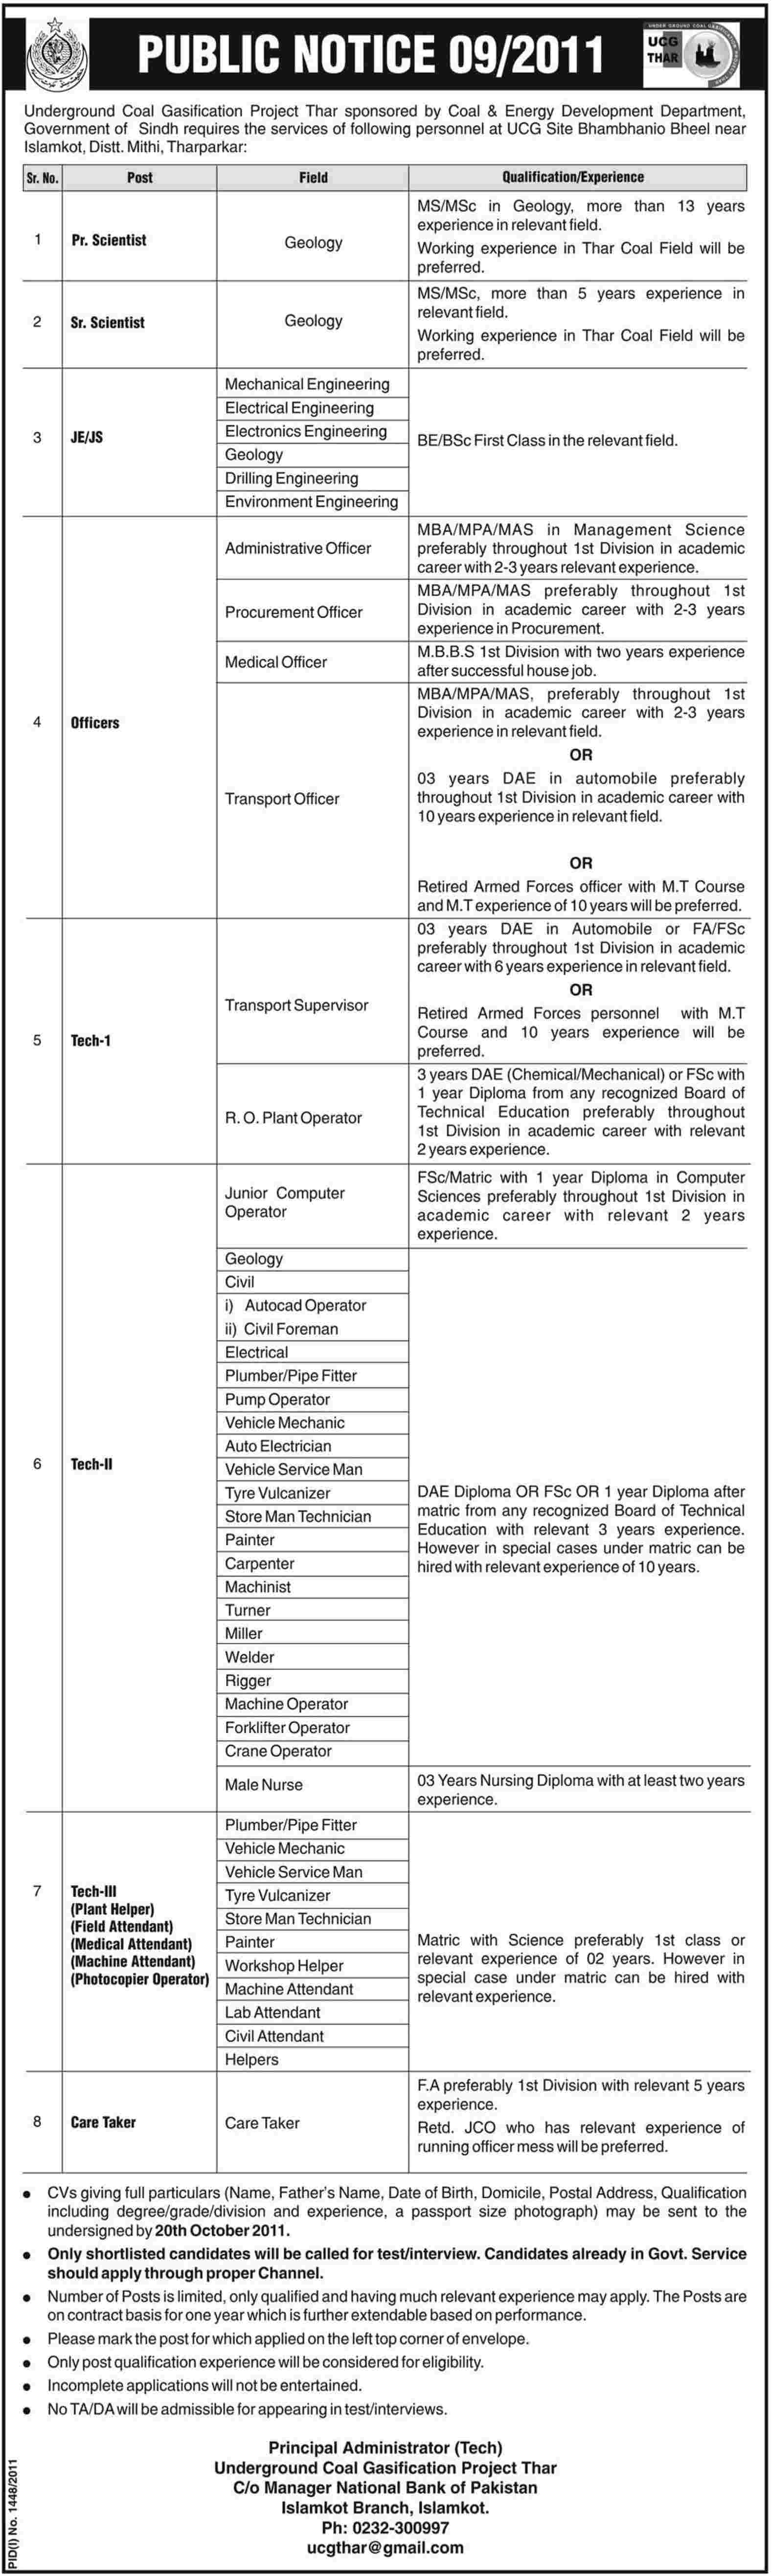 Underground Coal Gasification Project Thar, Government of Sindh Required Staff